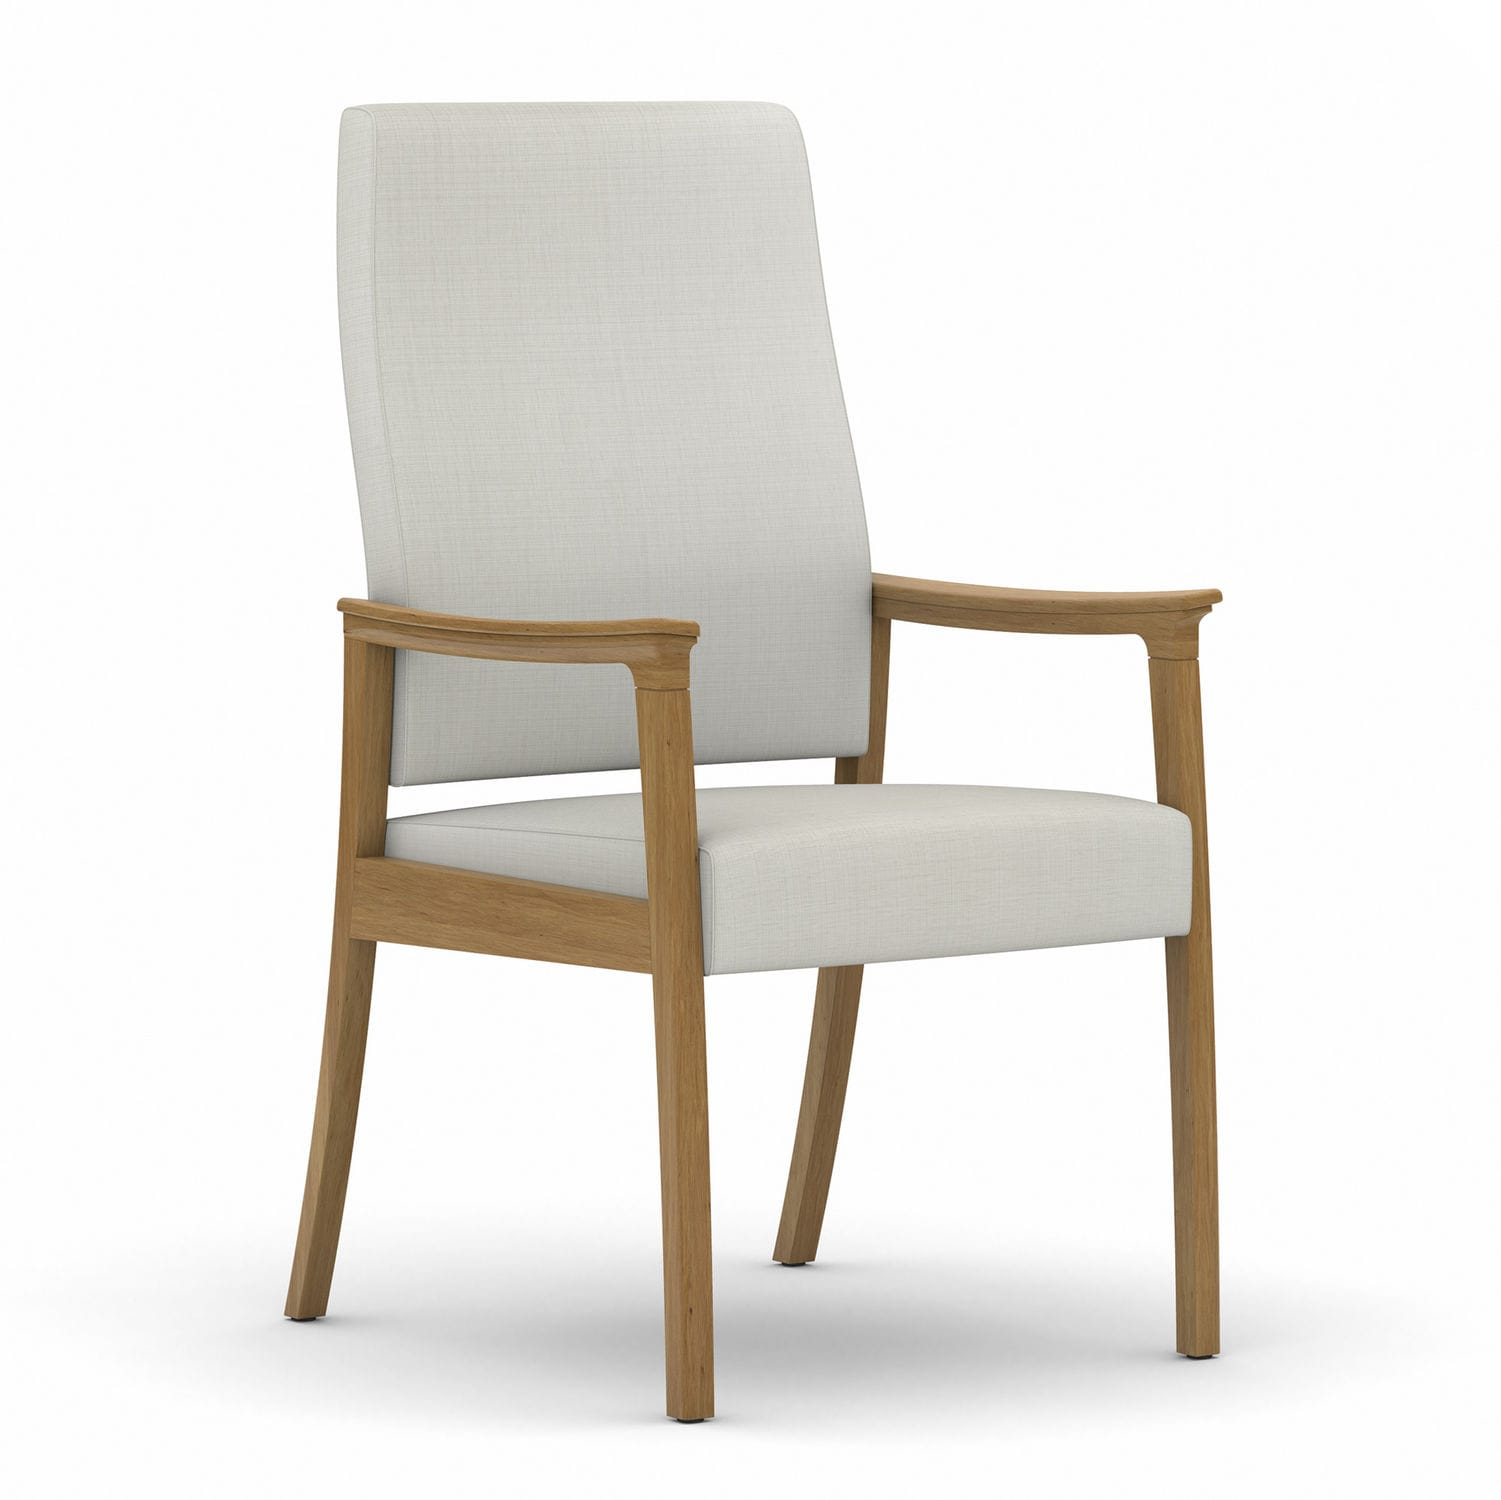 Waiting room chair dining room with armrests Modern Amenity